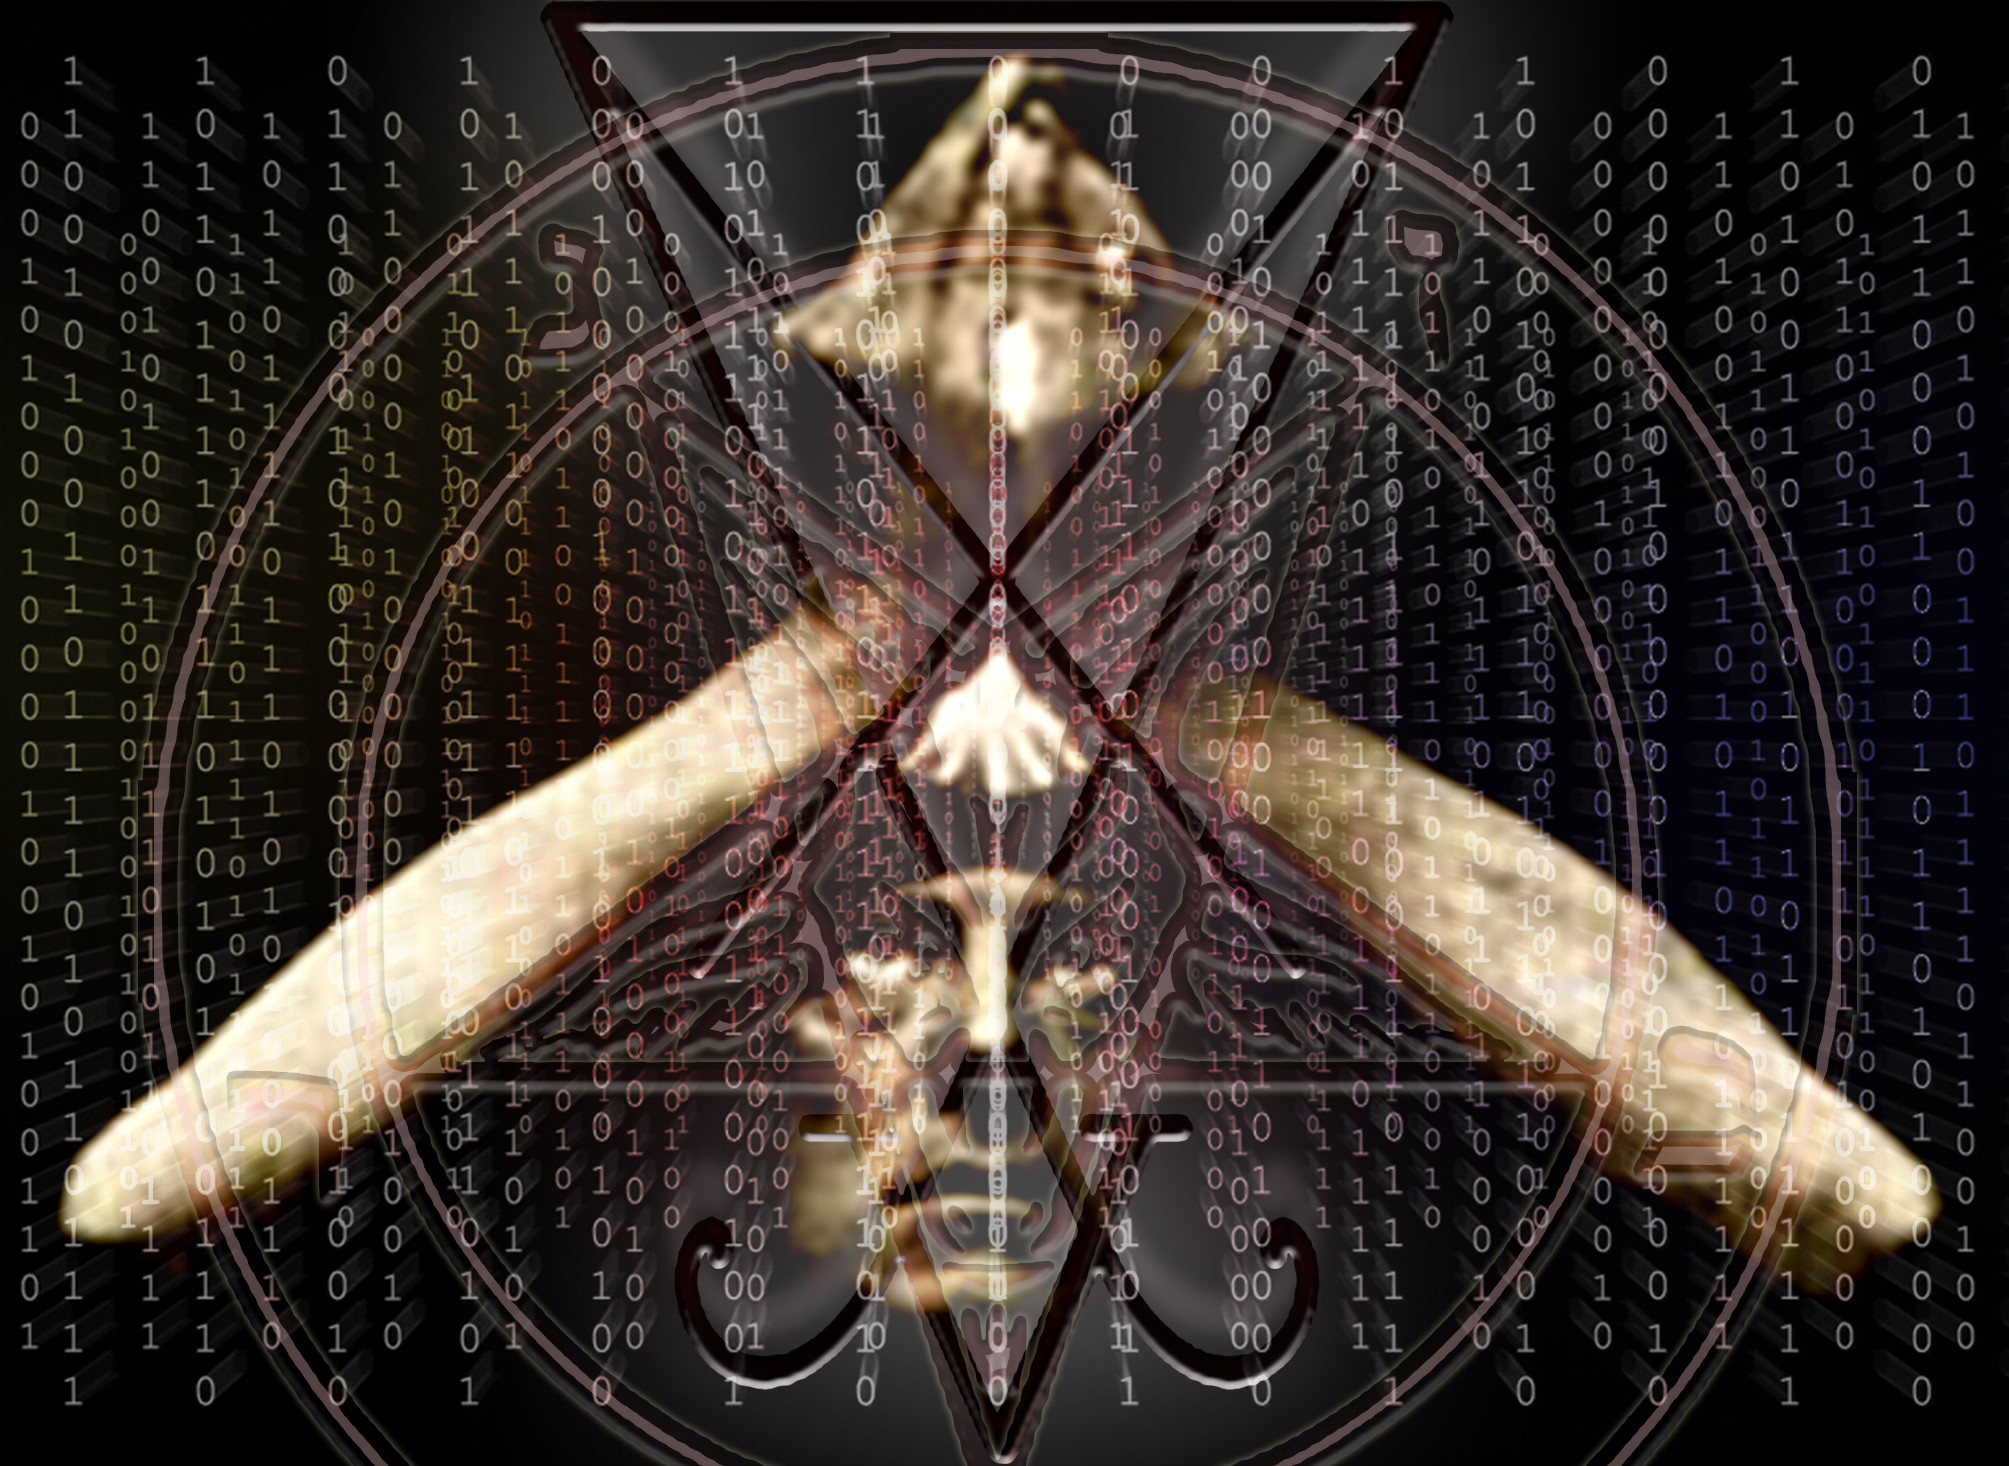 2009x1466 aleister crowley illuminati freemason satanic cultjoshuashanholtz dark  horror occult wallpaper